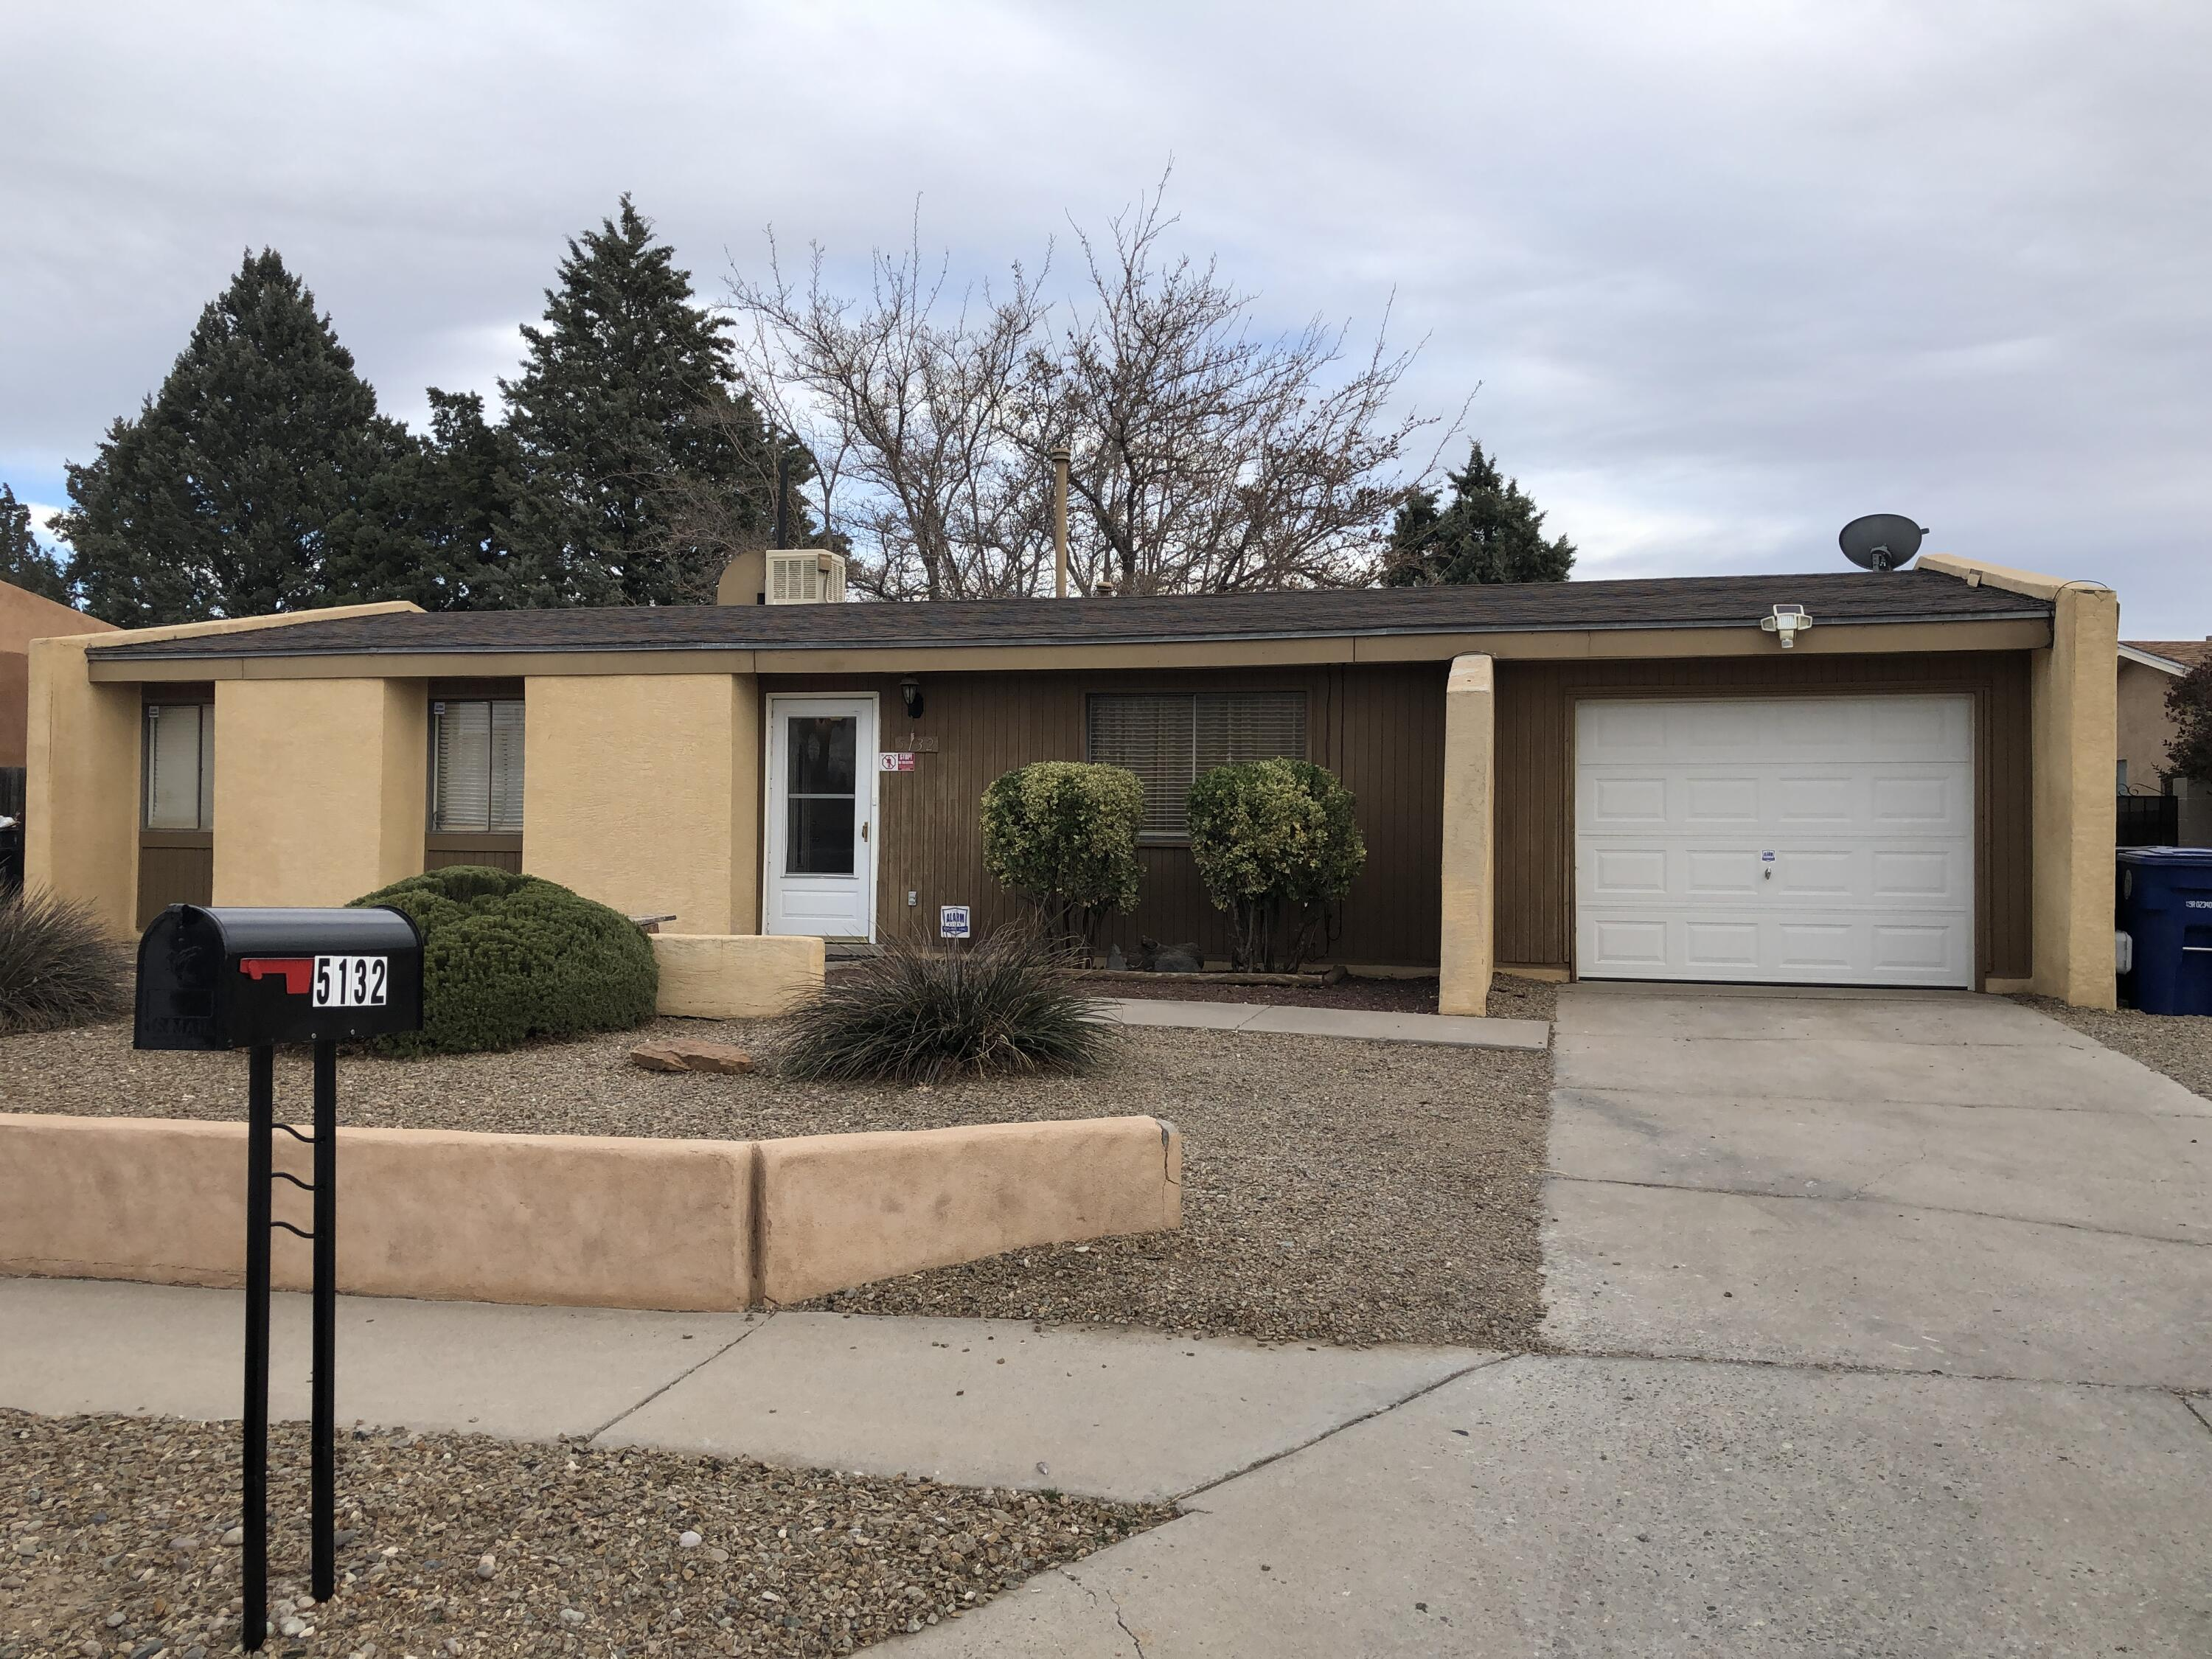 Ready to move in!!! Waiting for the right buyer. This home has a lot to offer.  Roof replaced 2019, cooler 2020, water heater 2018. New laminate flooring, interior doors, counter tops, new vanity in main bathroom. Step out into the backyard to a 13x30 covered patio. Great place for entertaining Large shade tree. 2 storage sheds, trampoline  Children play set stays.